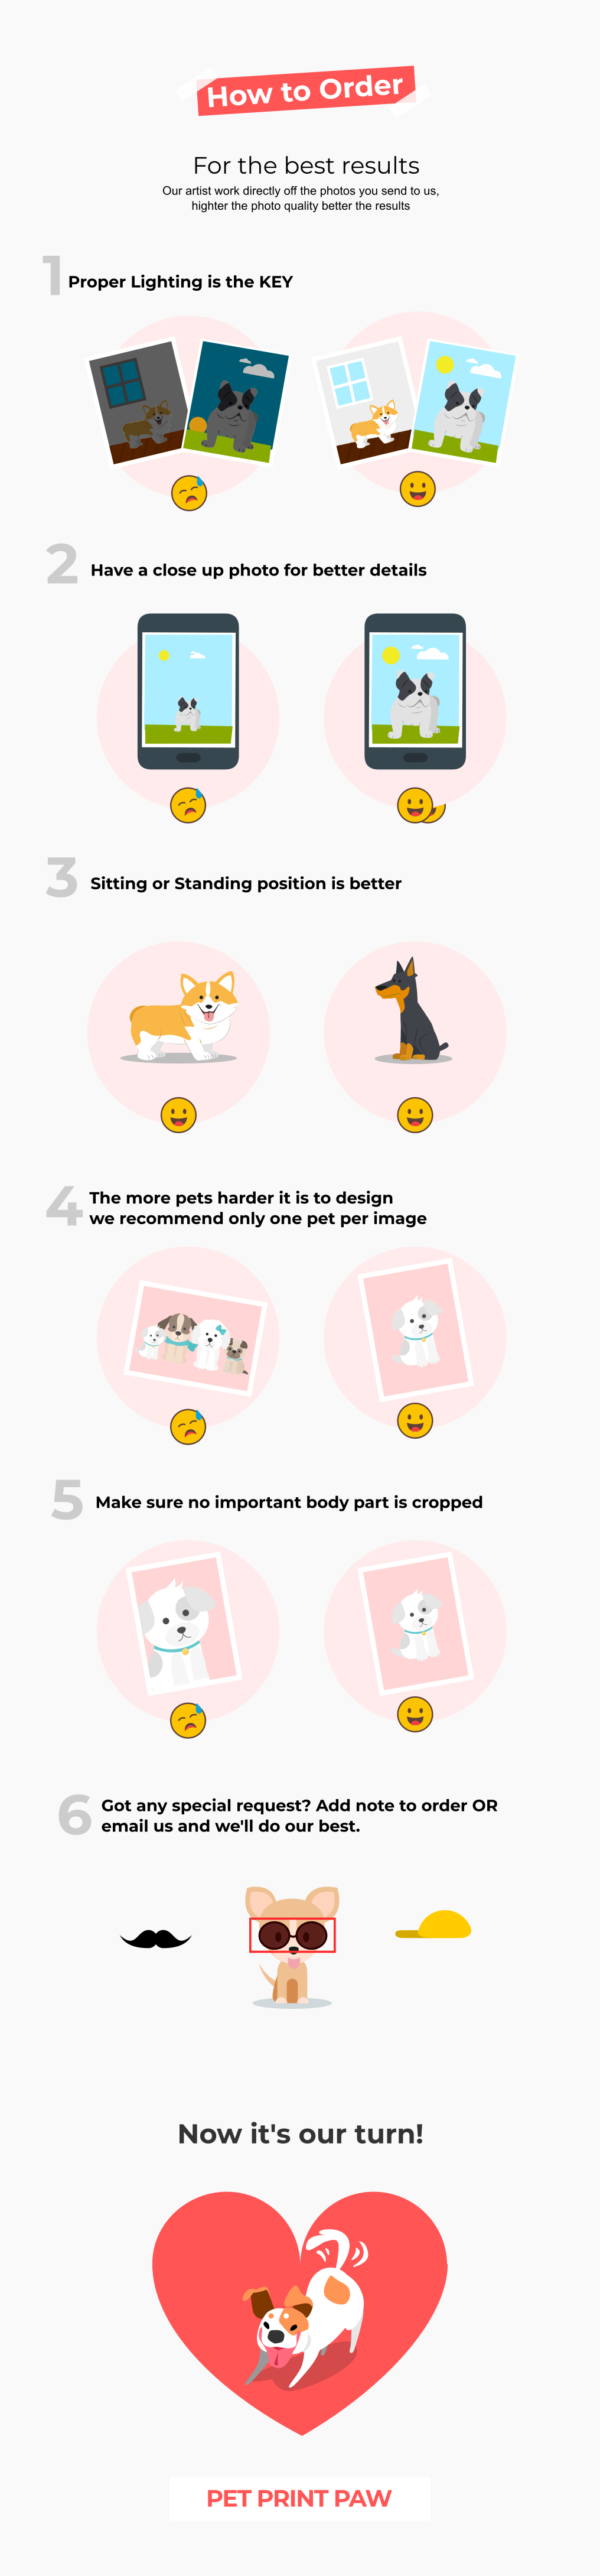 How it works image of PetPrintPaw